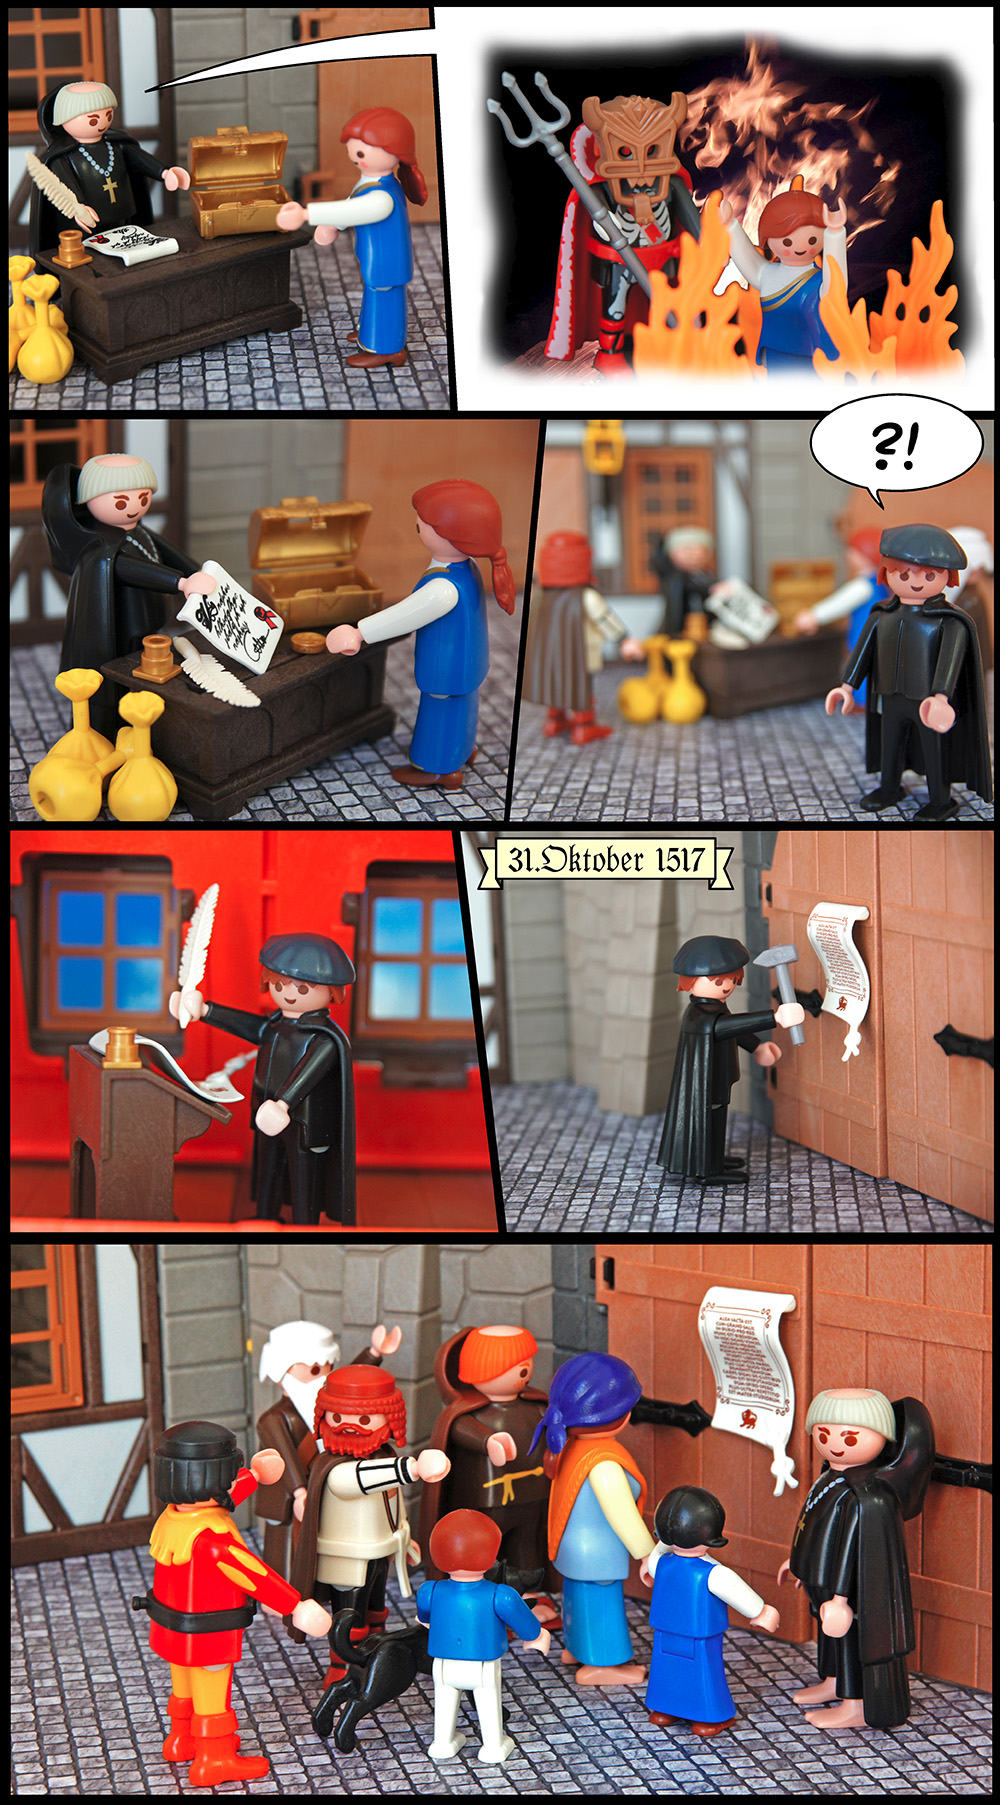 Reformation in Playmobil